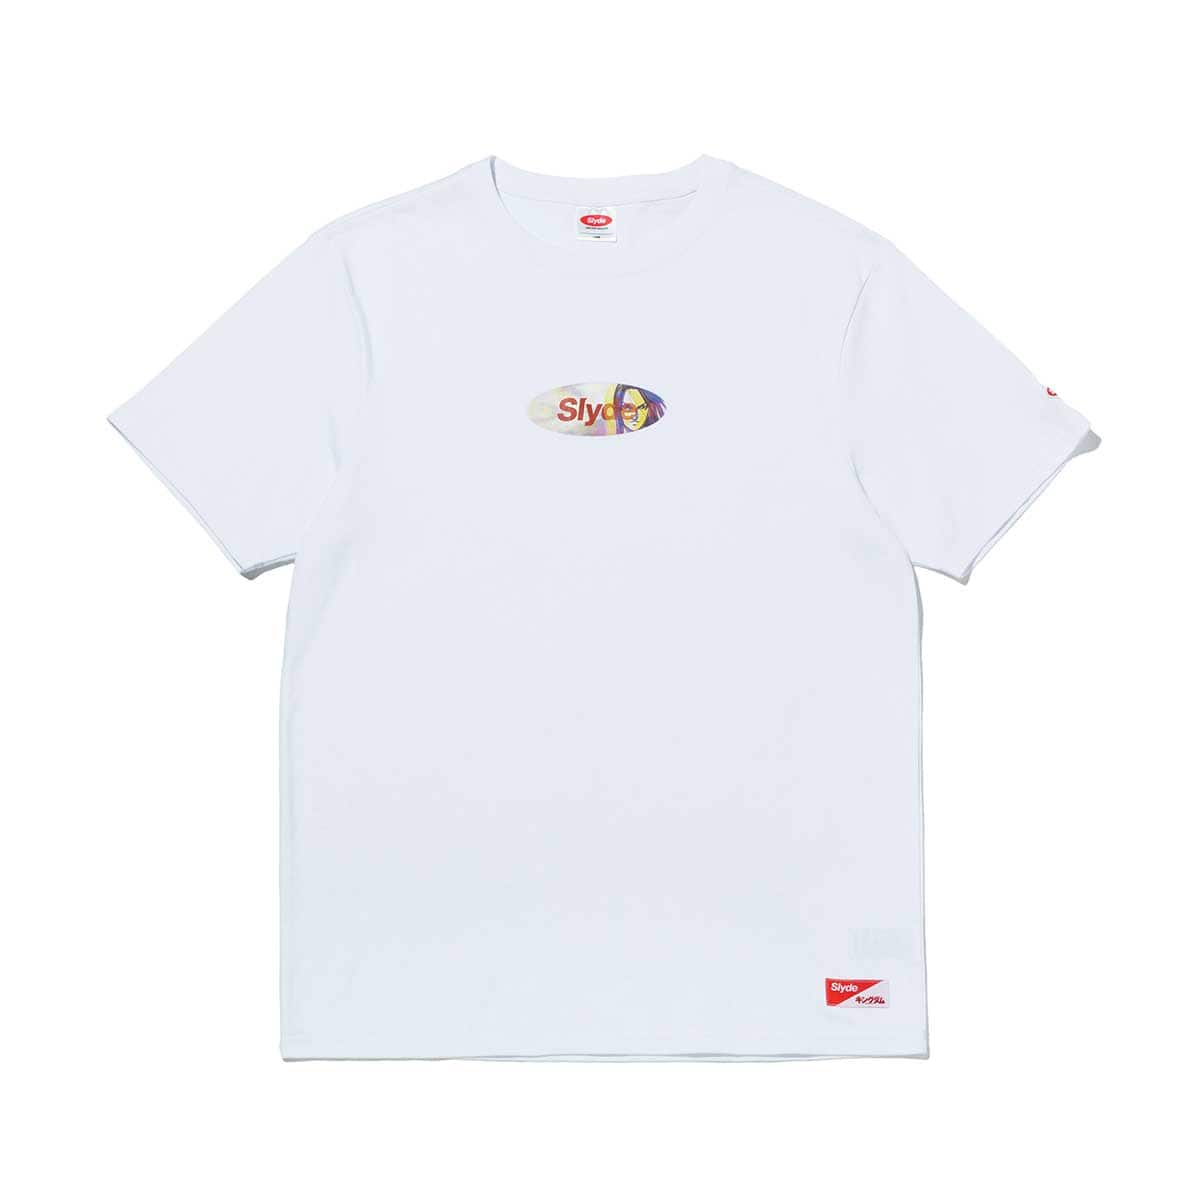 Slyde / KINGDOM EISEI EFFECT TEE WHITE 20SU-S_photo_large